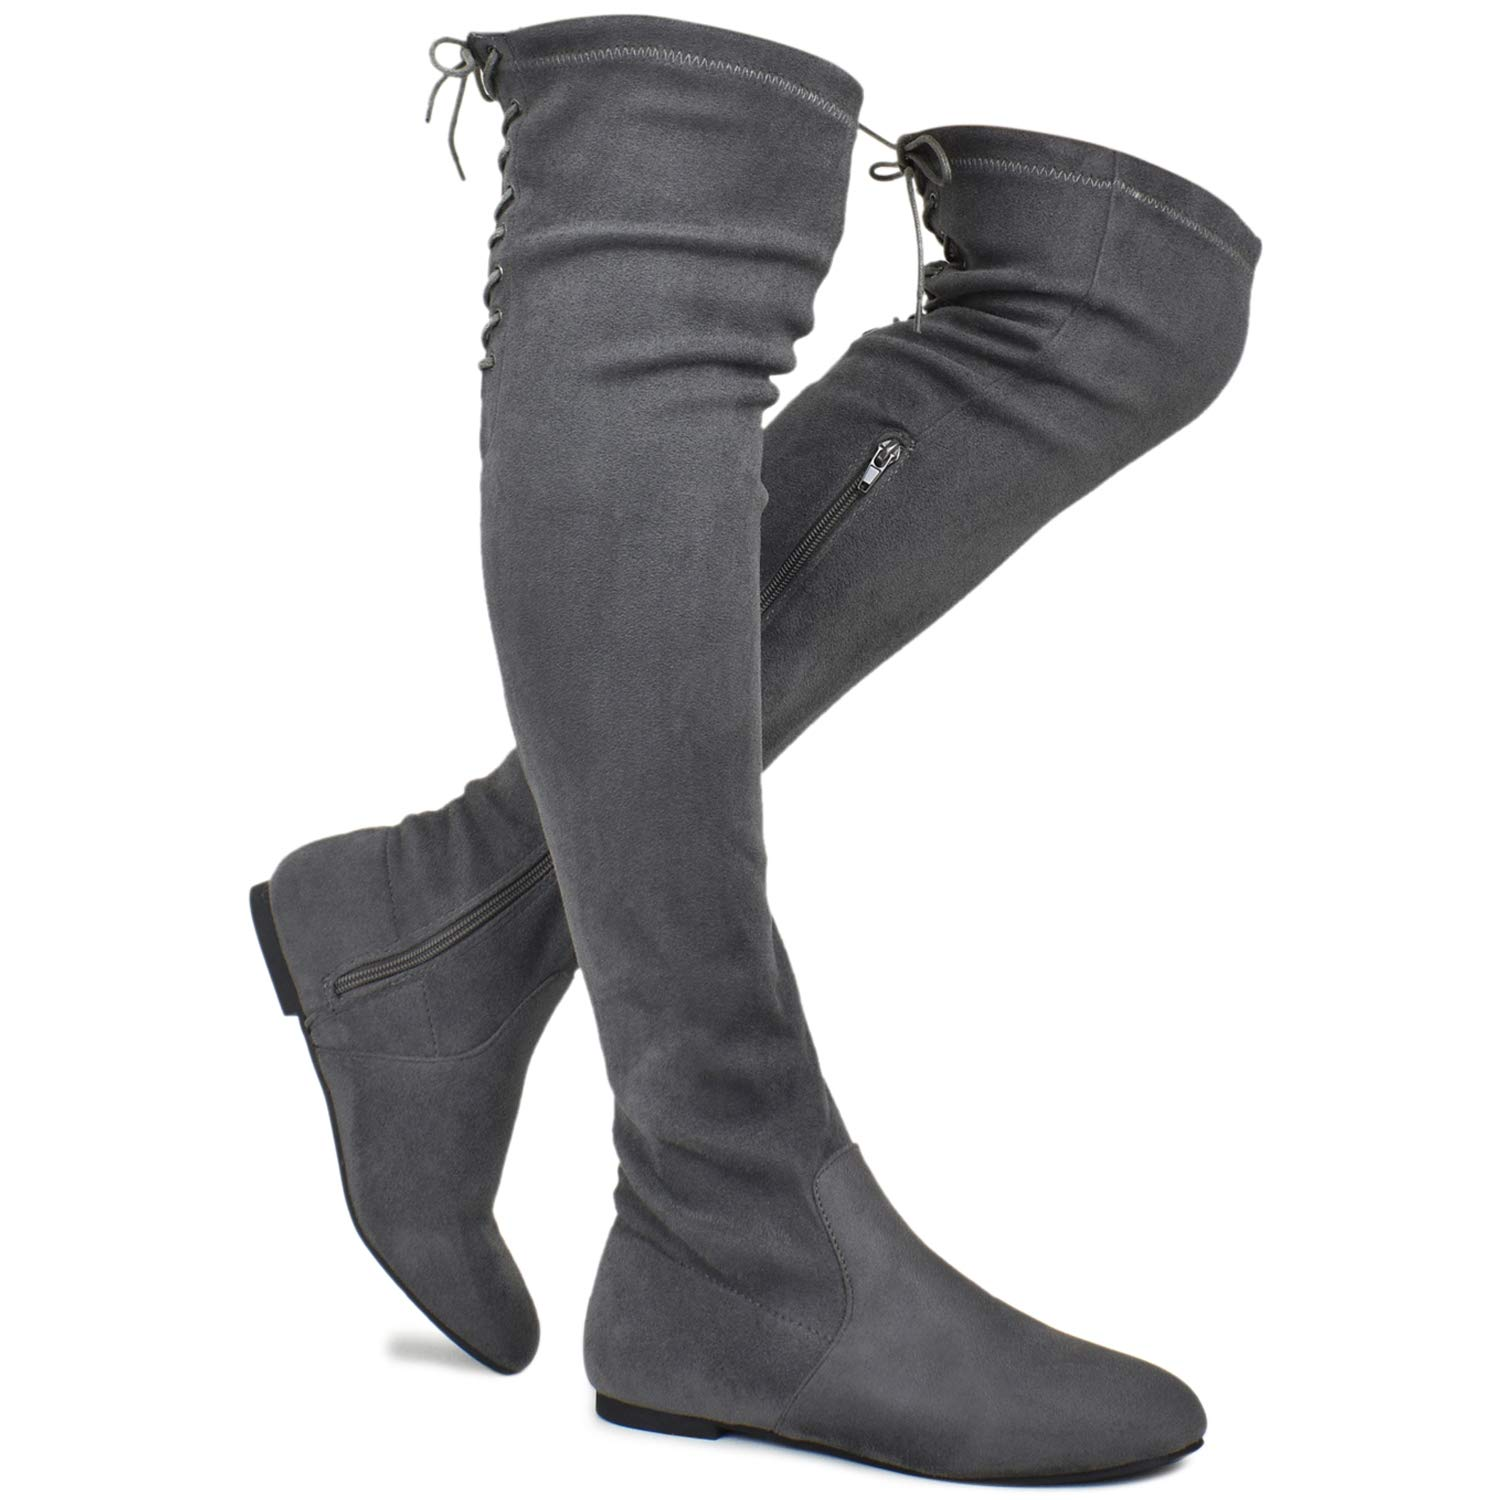 46ce22affc93 Amazon.com | Premier Standard - Women's Fashion Comfy Vegan Suede Side  Zipper Over Knee High Boots | Over-the-Knee